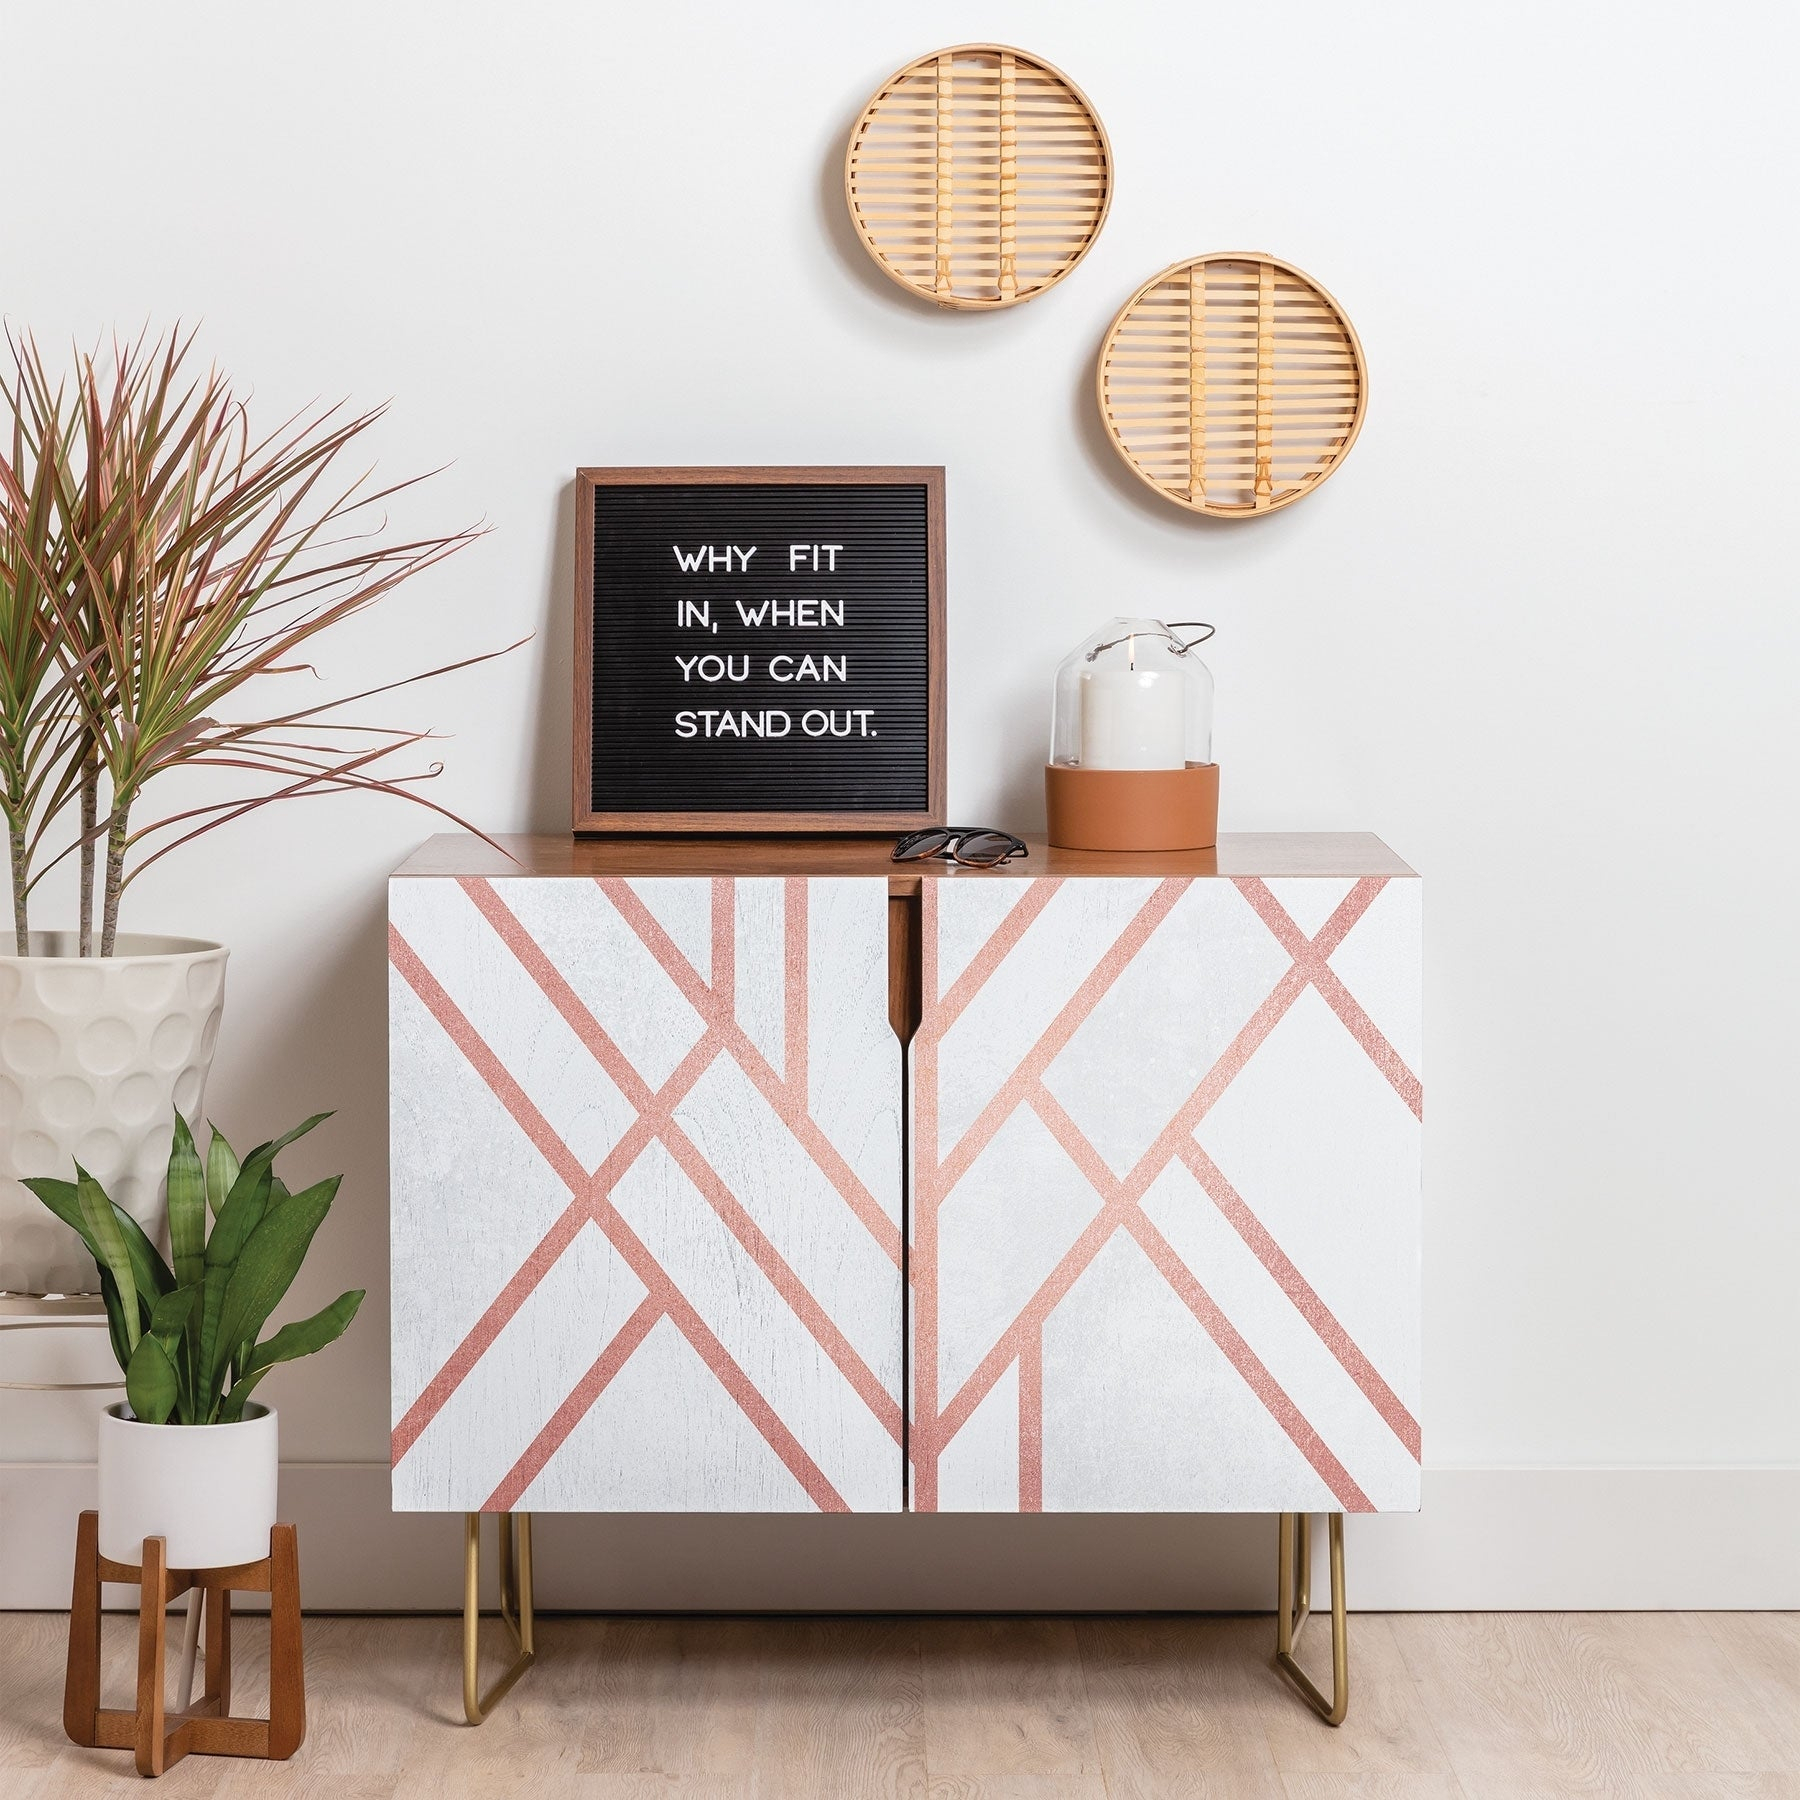 Deny Designs Pink And White Geometric Credenza (Birch Or Walnut, 3 Leg  Options) regarding Line Geo Credenzas (Image 11 of 30)